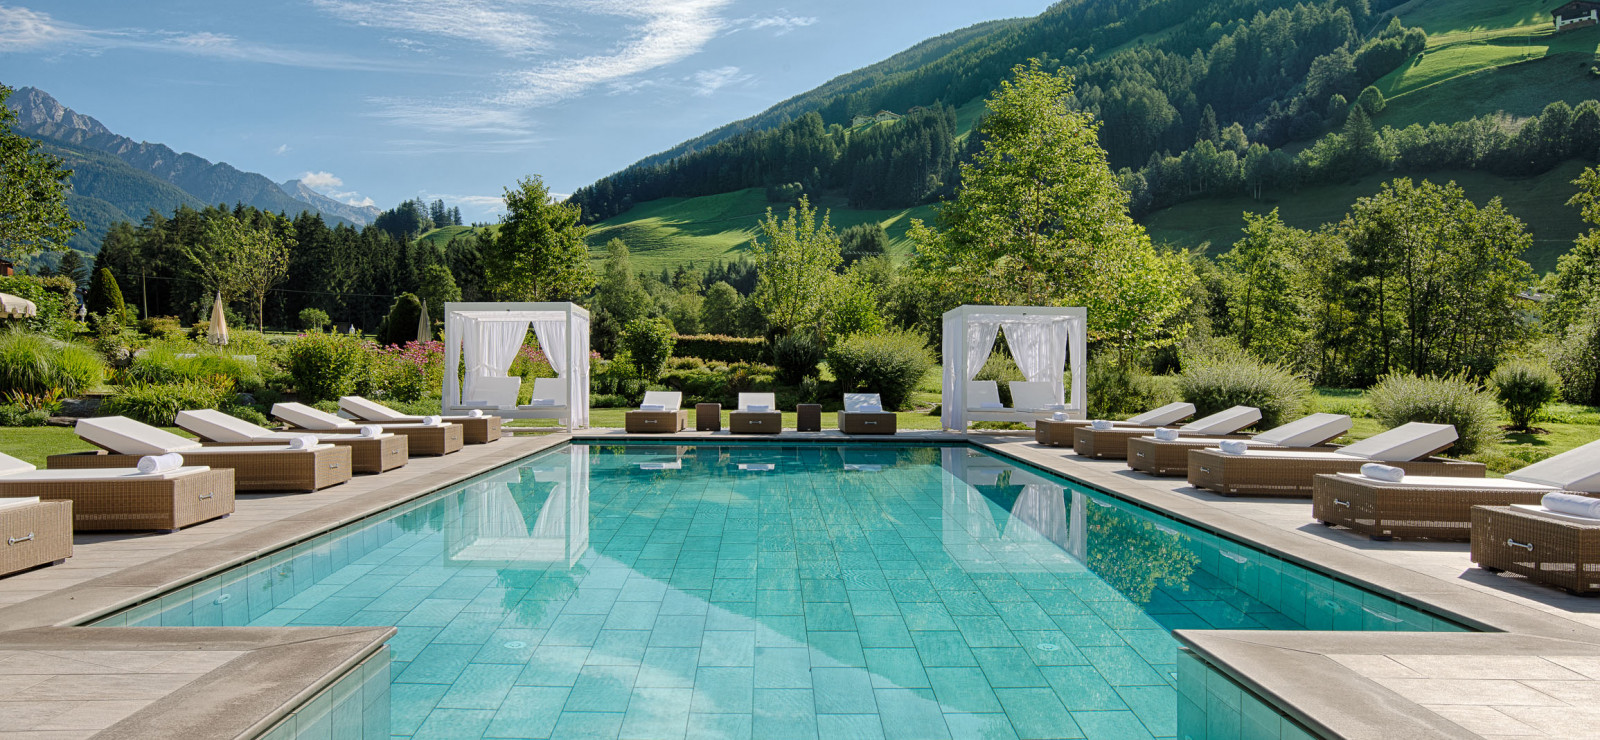 Alpenpalace Luxury Hideaway & Spa Retreat Bilder | Bild 1